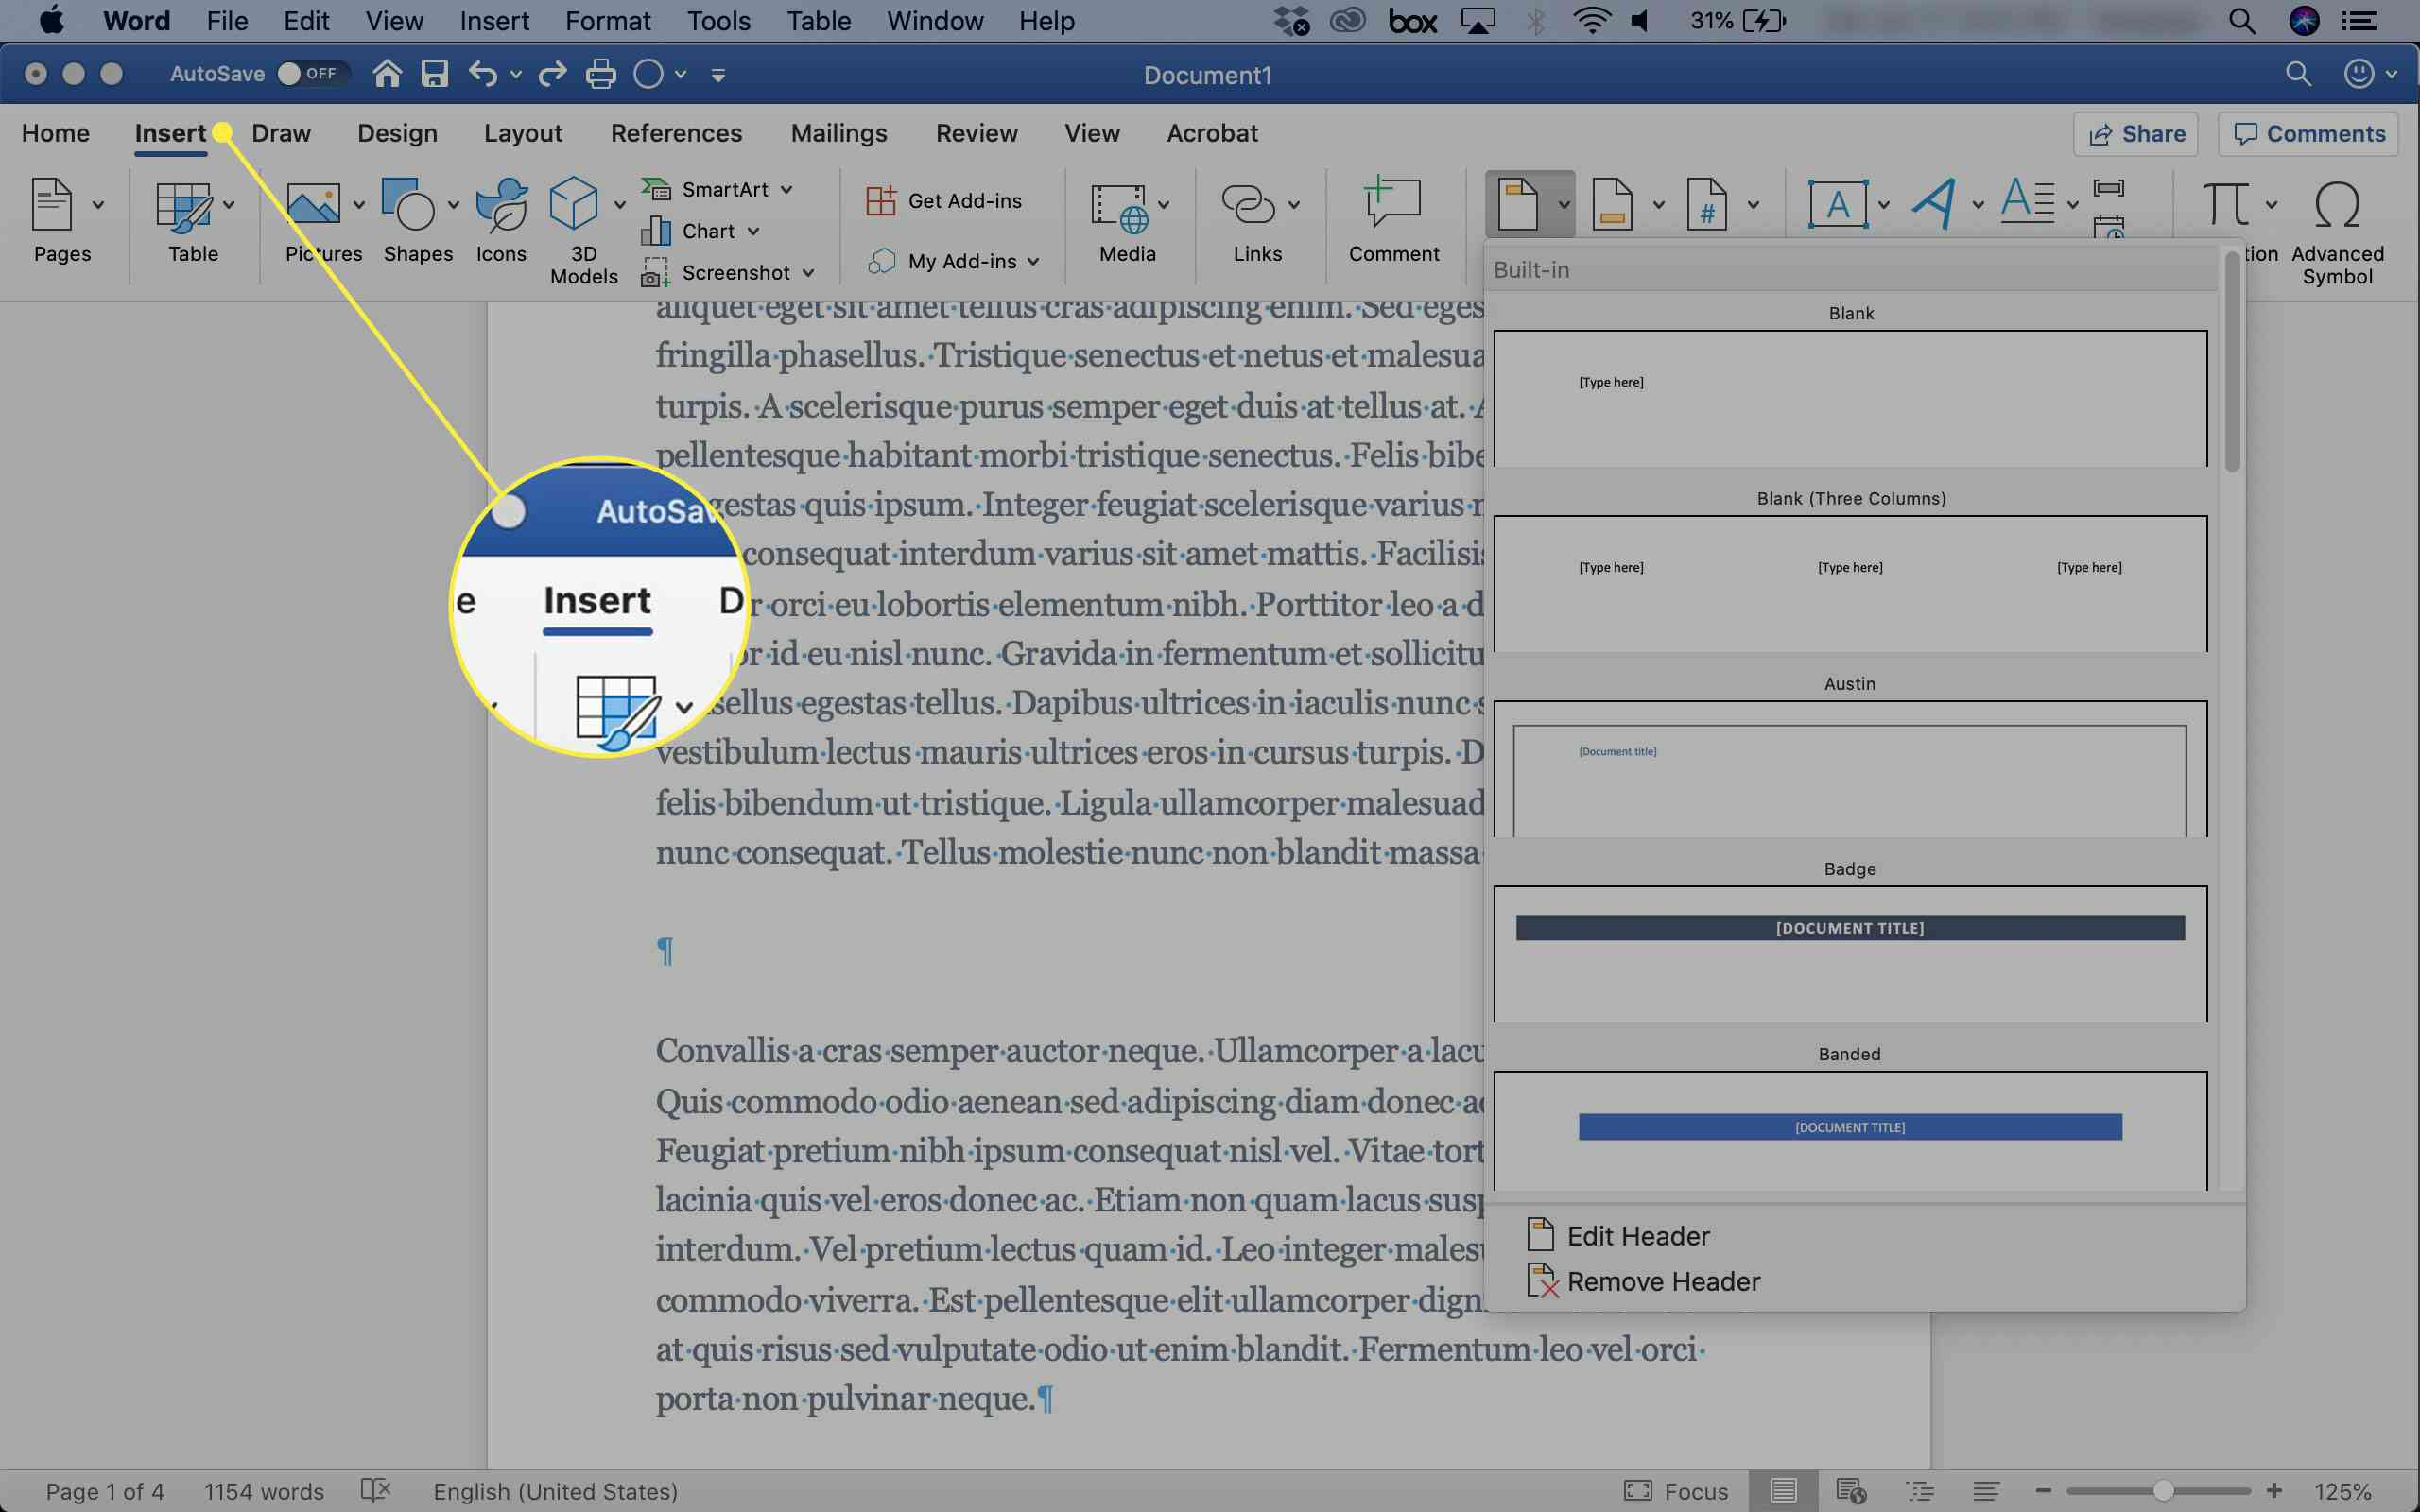 A screenshot of Word with the Insert tab highlighted